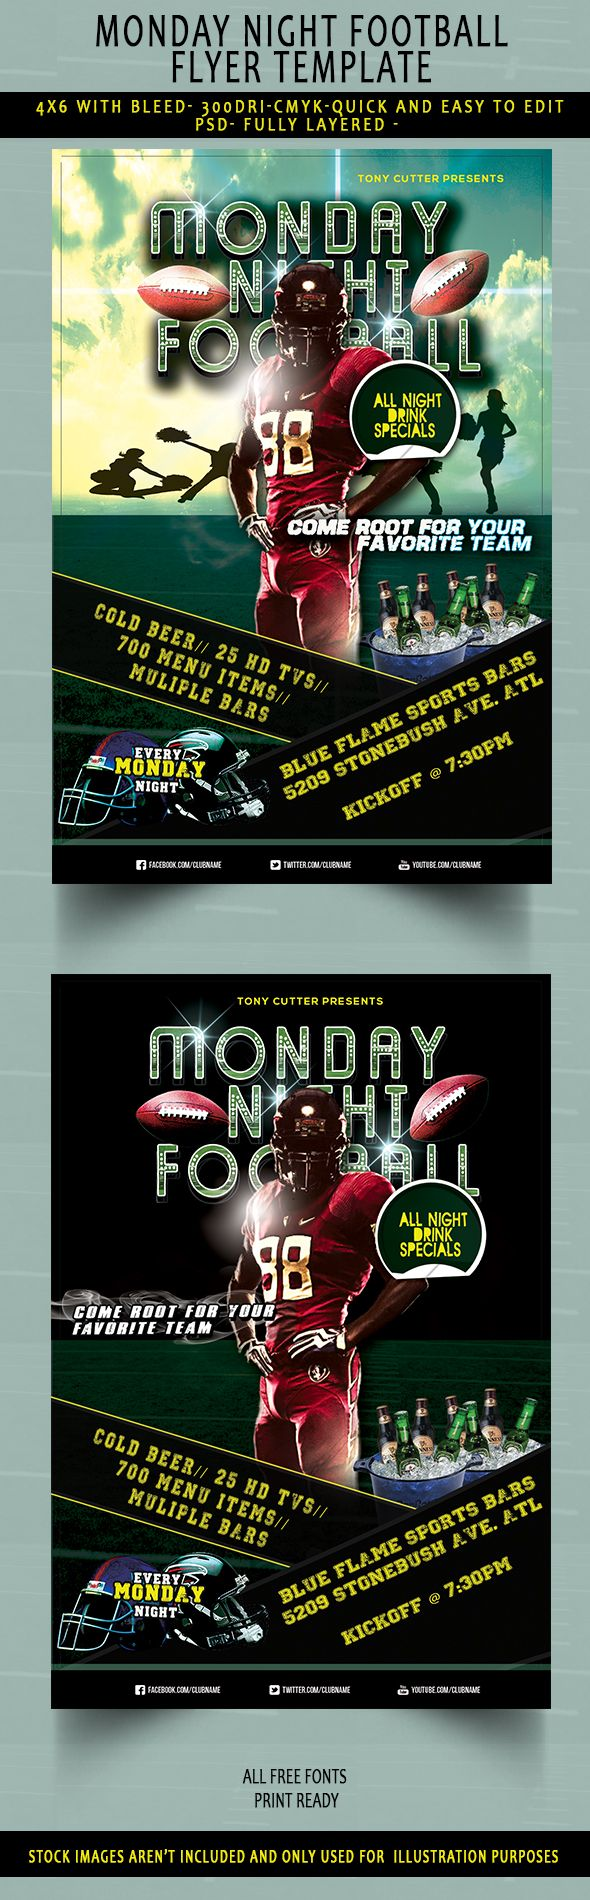 Monday Night Football Flyer (Free Download) PSD on Behance